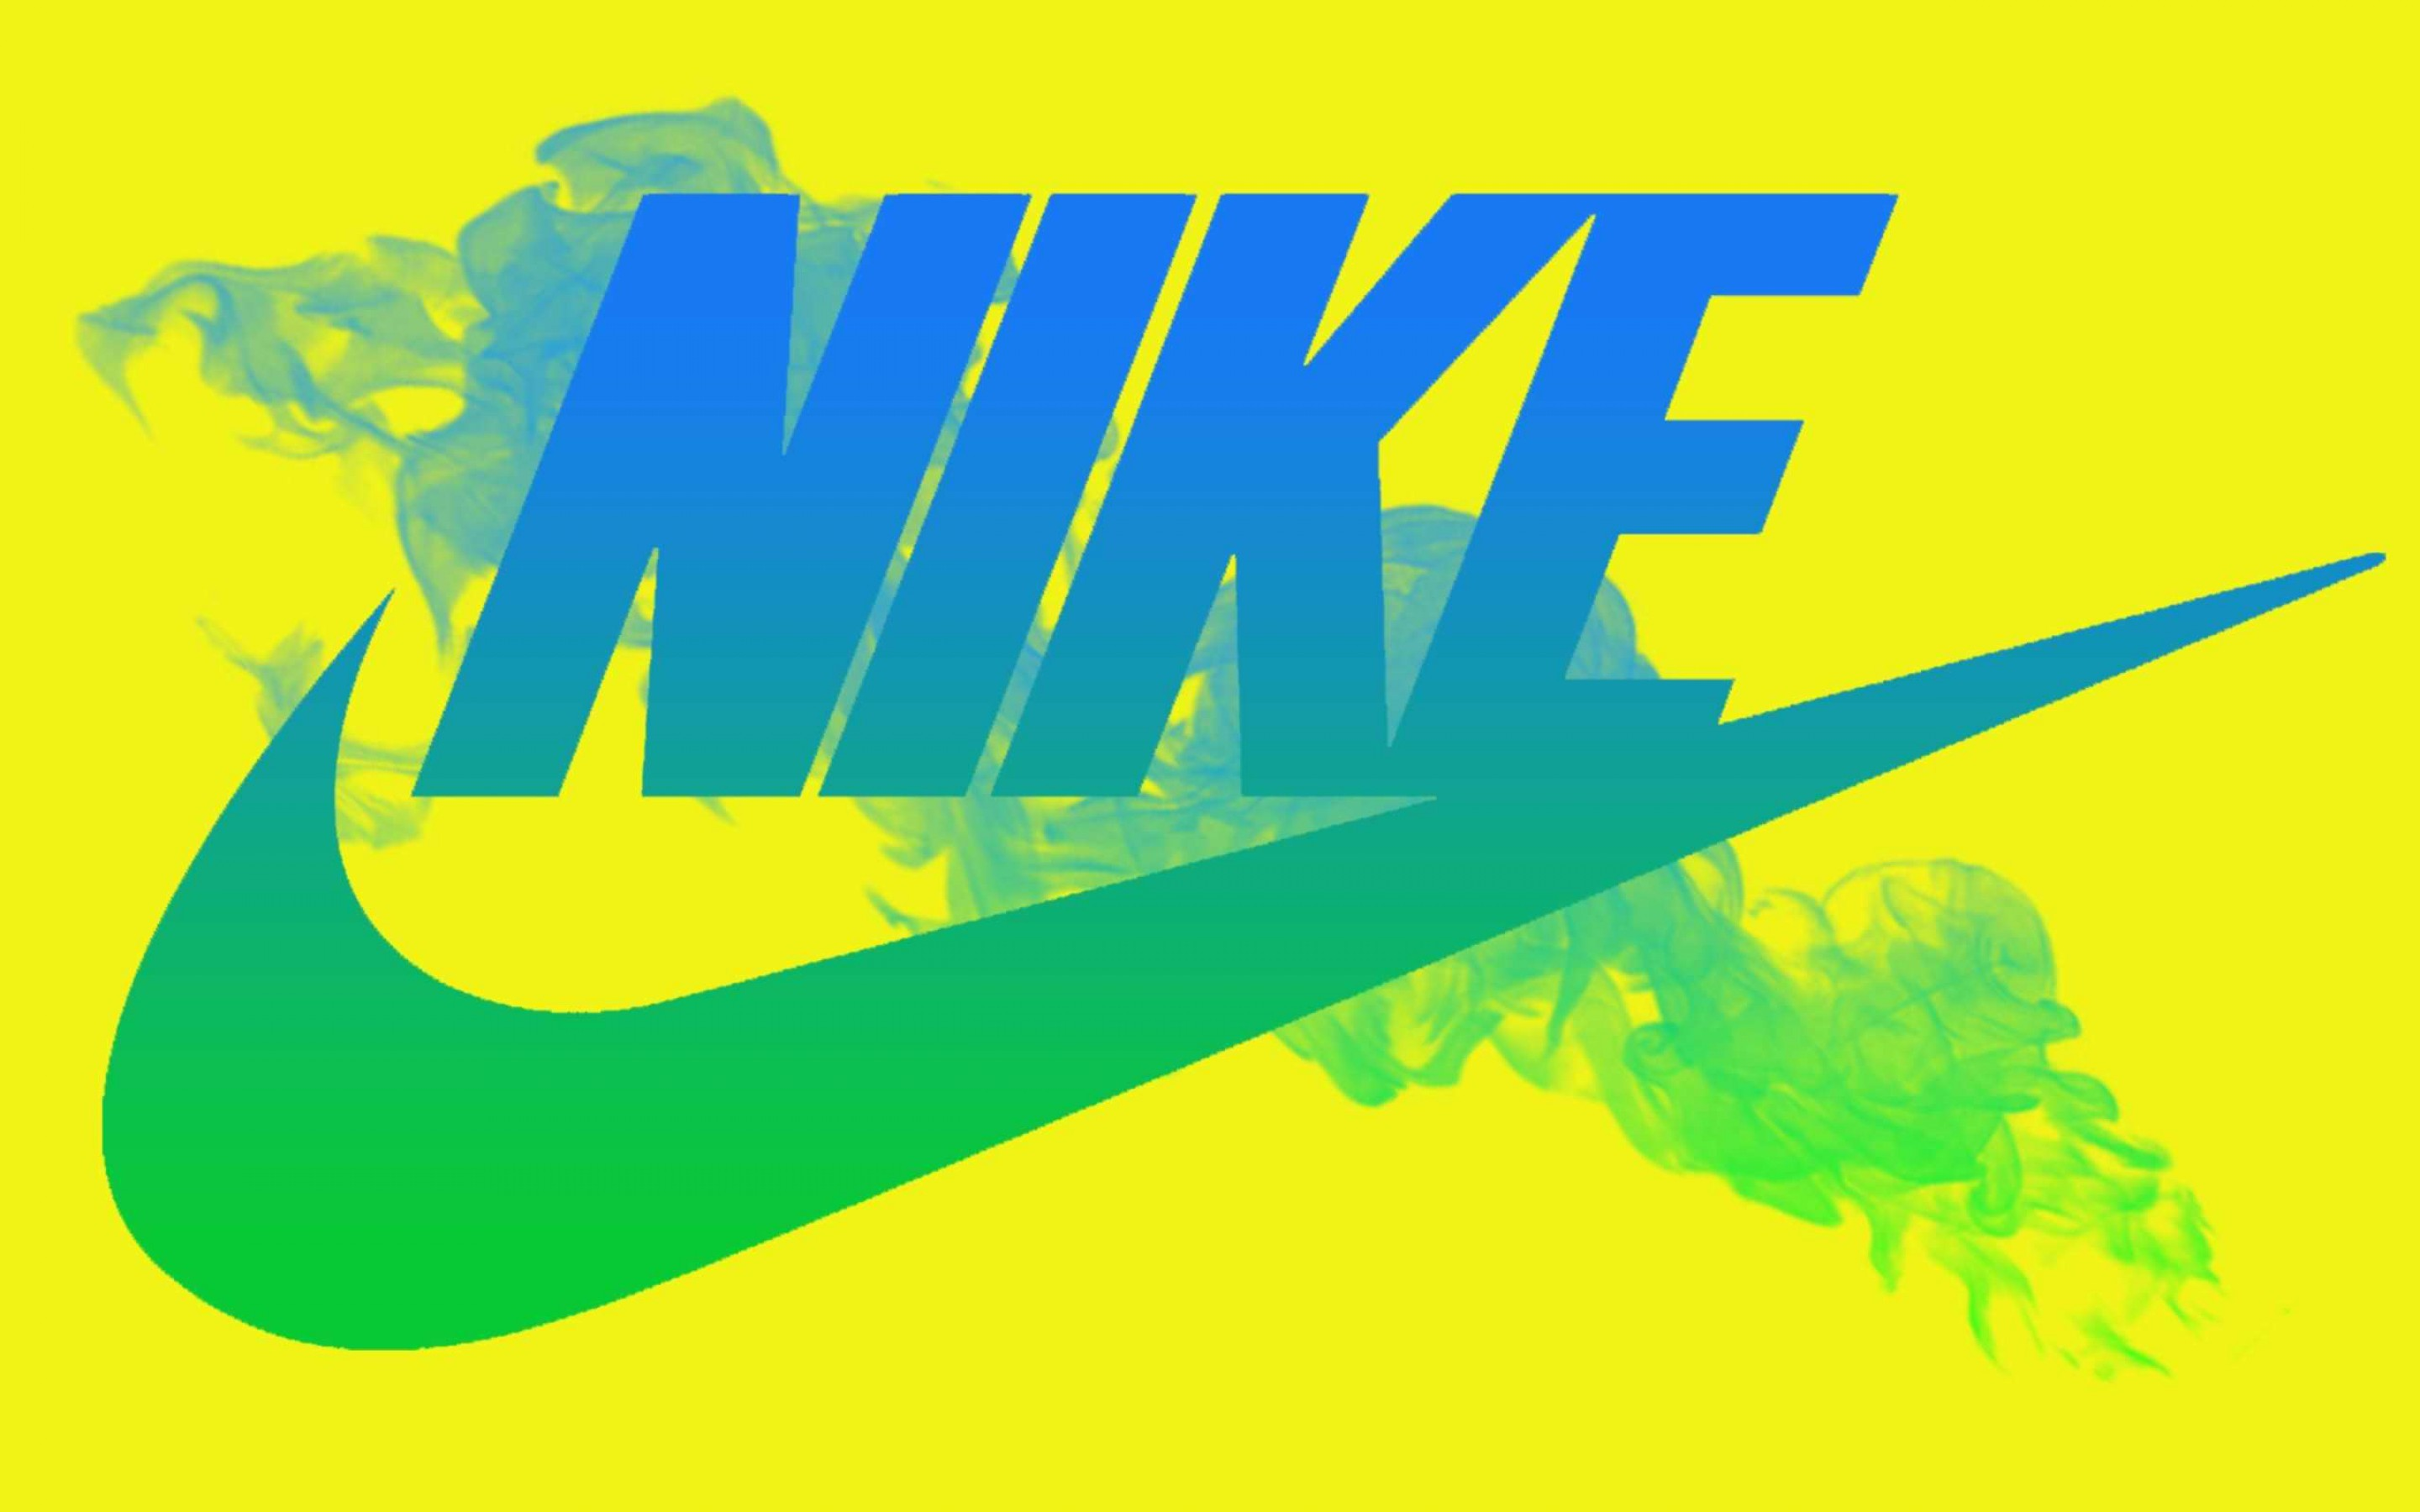 2880x1800 Blue Nike Logo Yellow Background Wallpaper Full HD